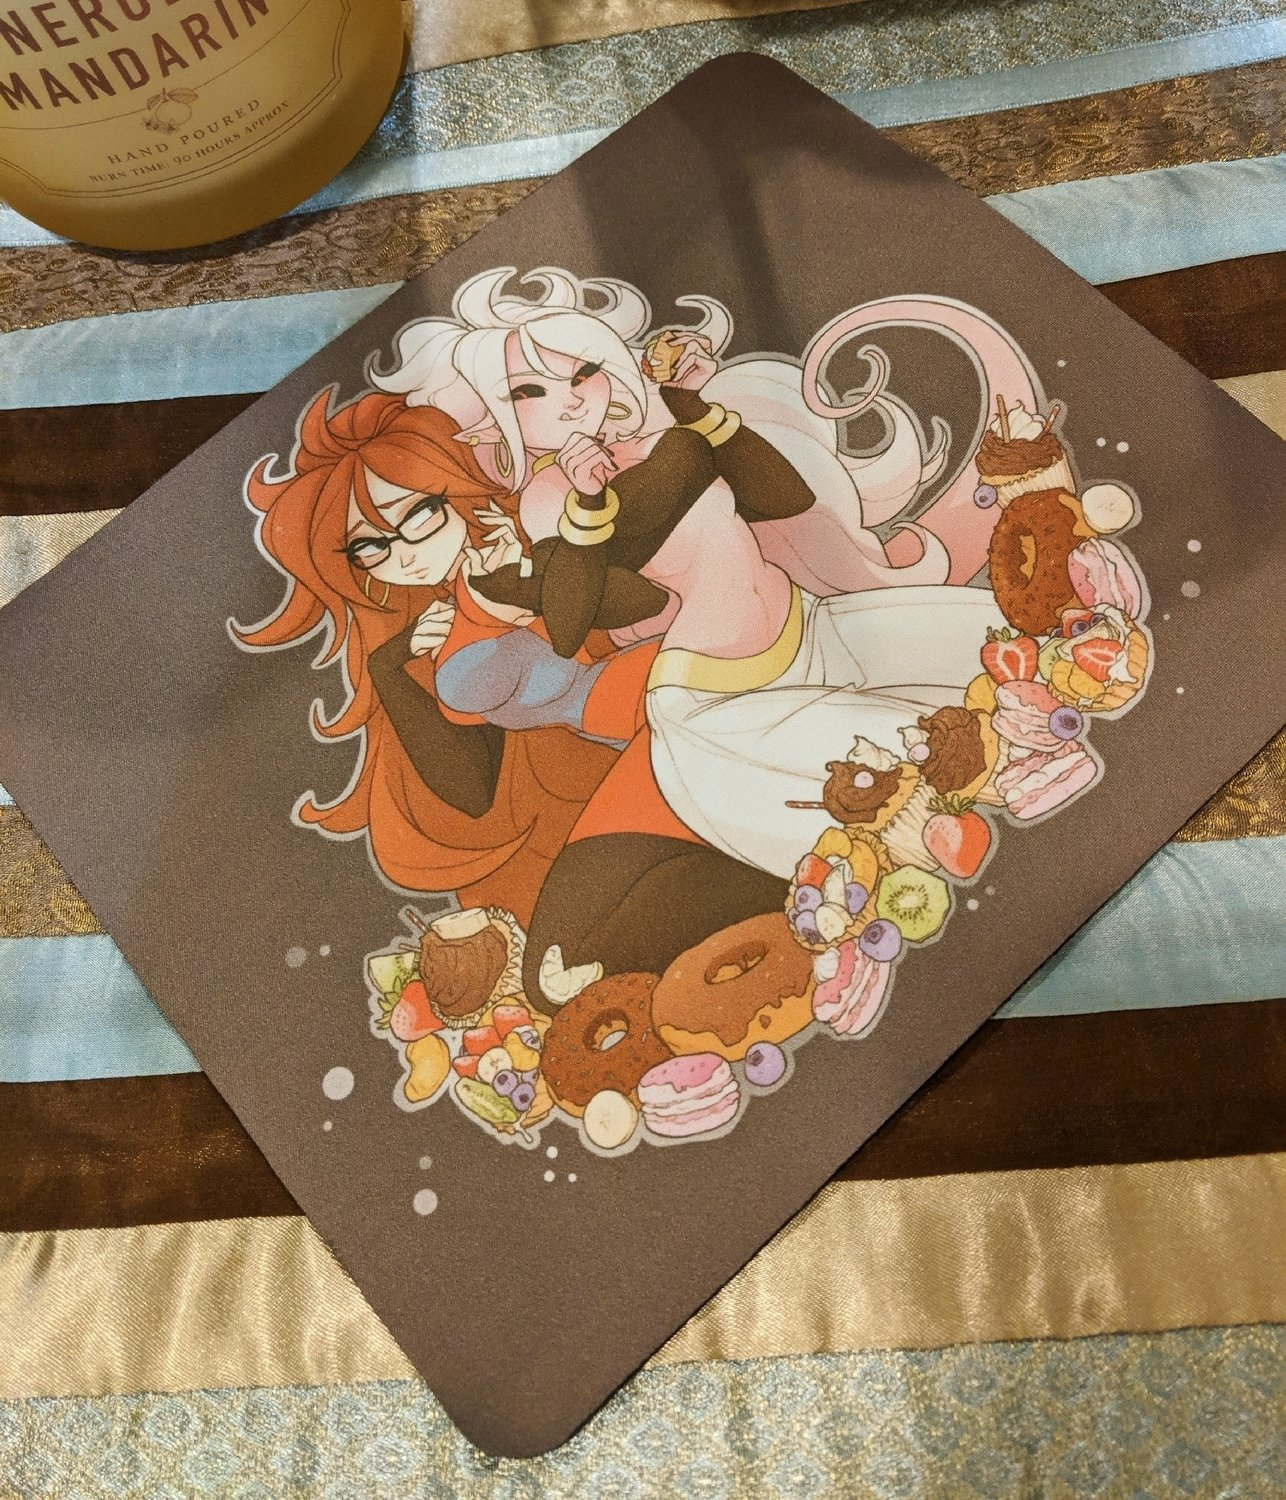 Mouse Pad: Android 21